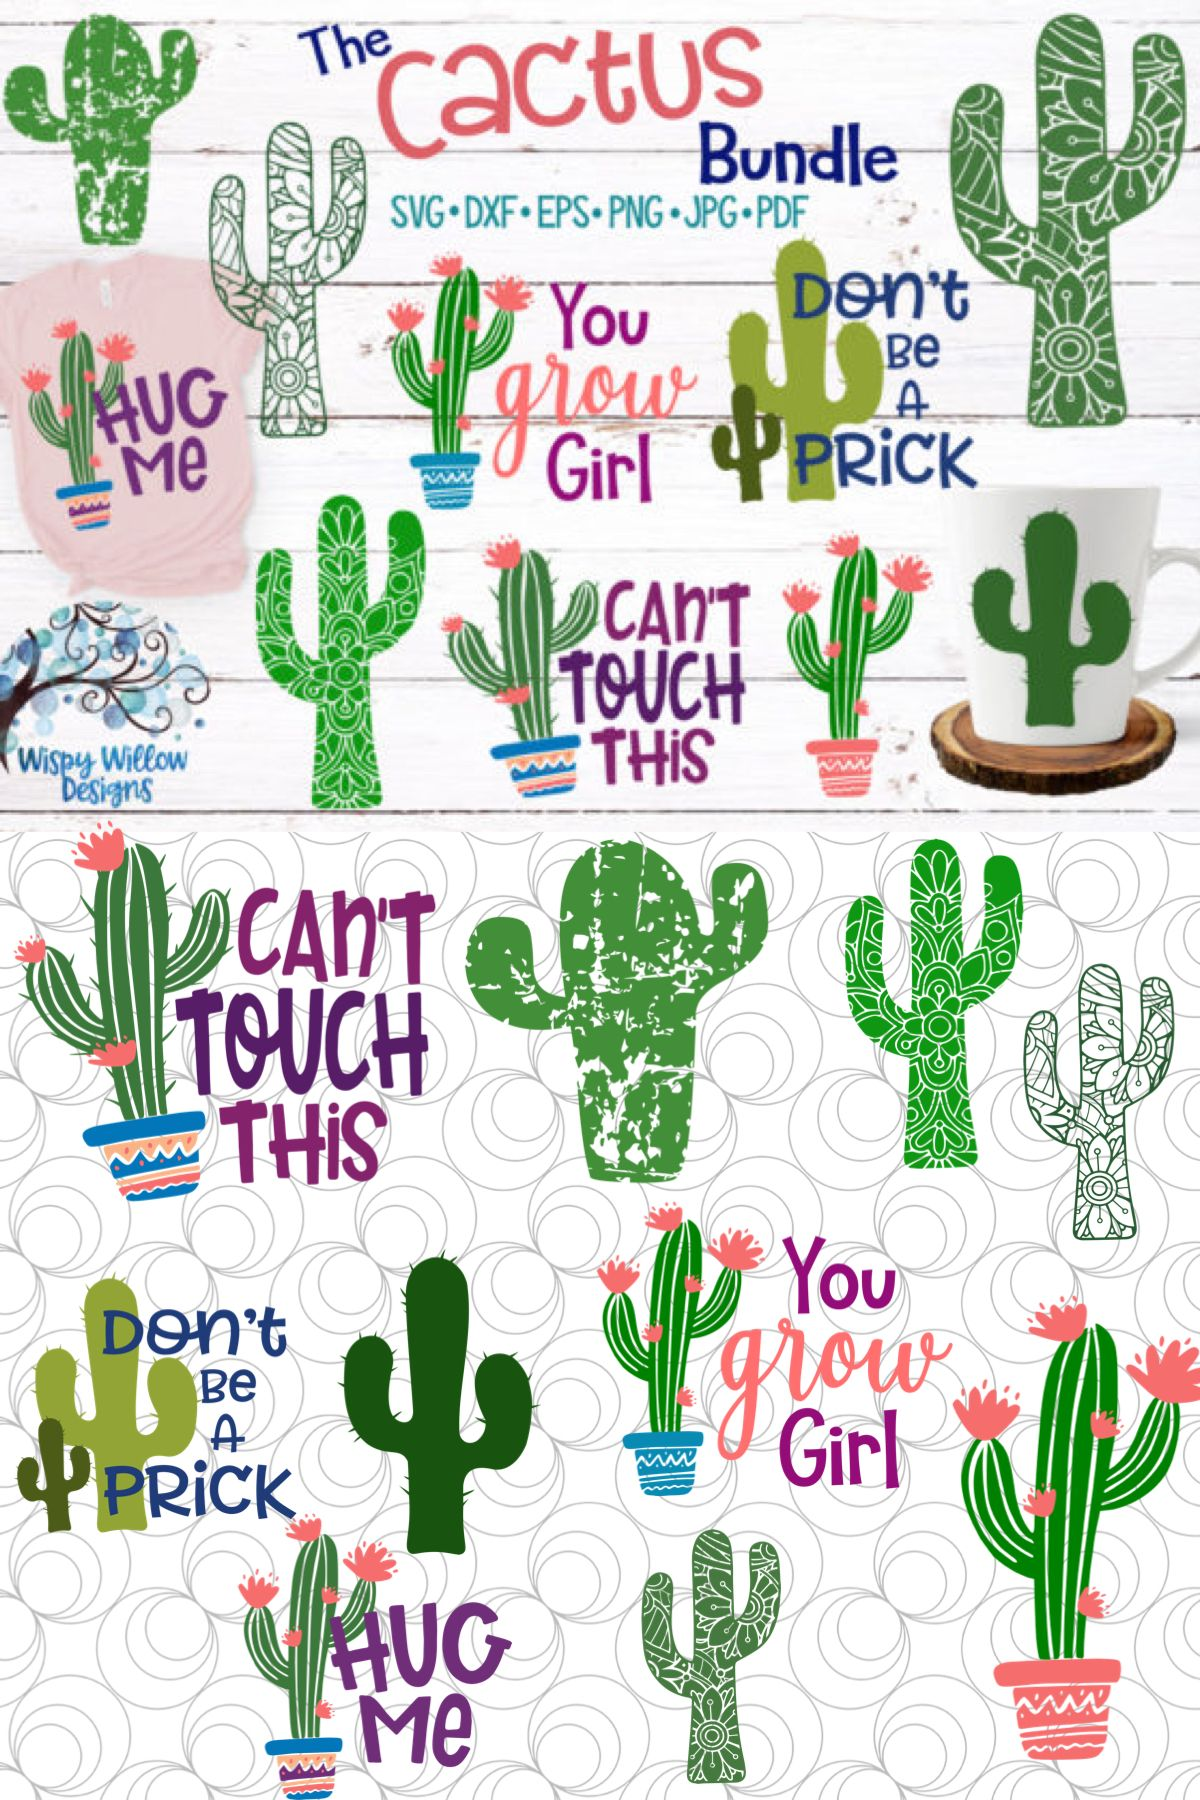 Cactus Bundle Graphic By Wispywillowdesigns Cactus